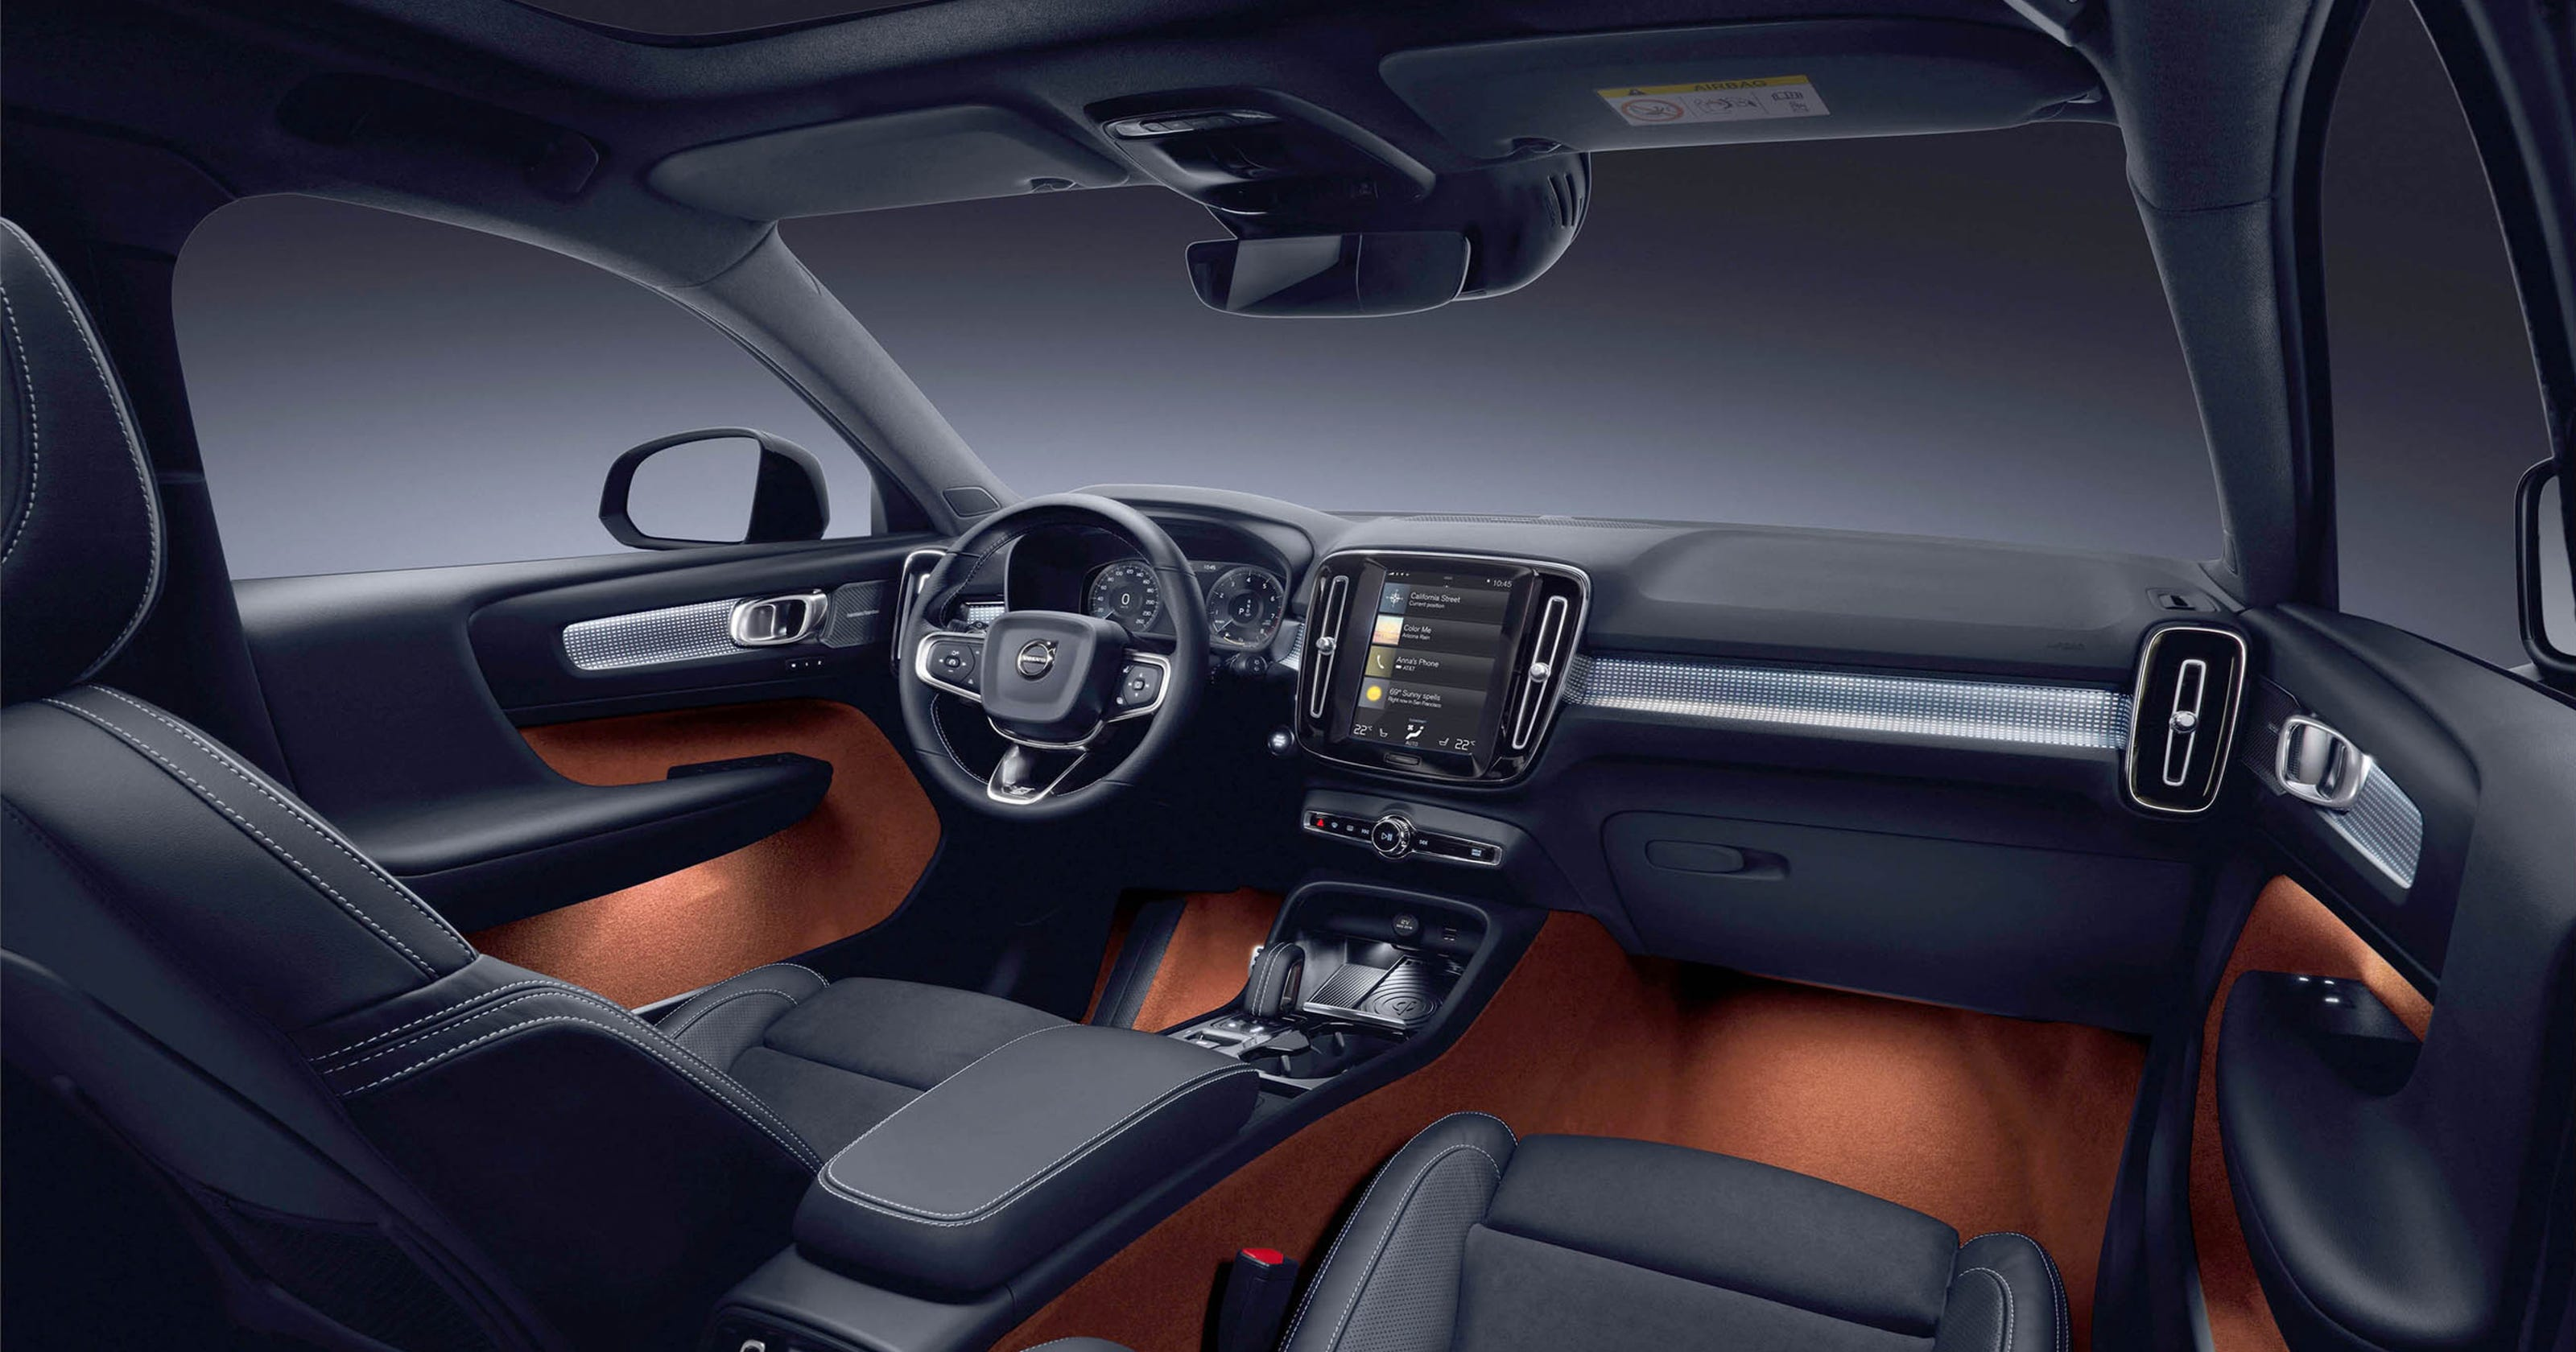 Review 2019 Volvo Xc40 Suv Has Wireless Phone Charging Carryout Bag Hook